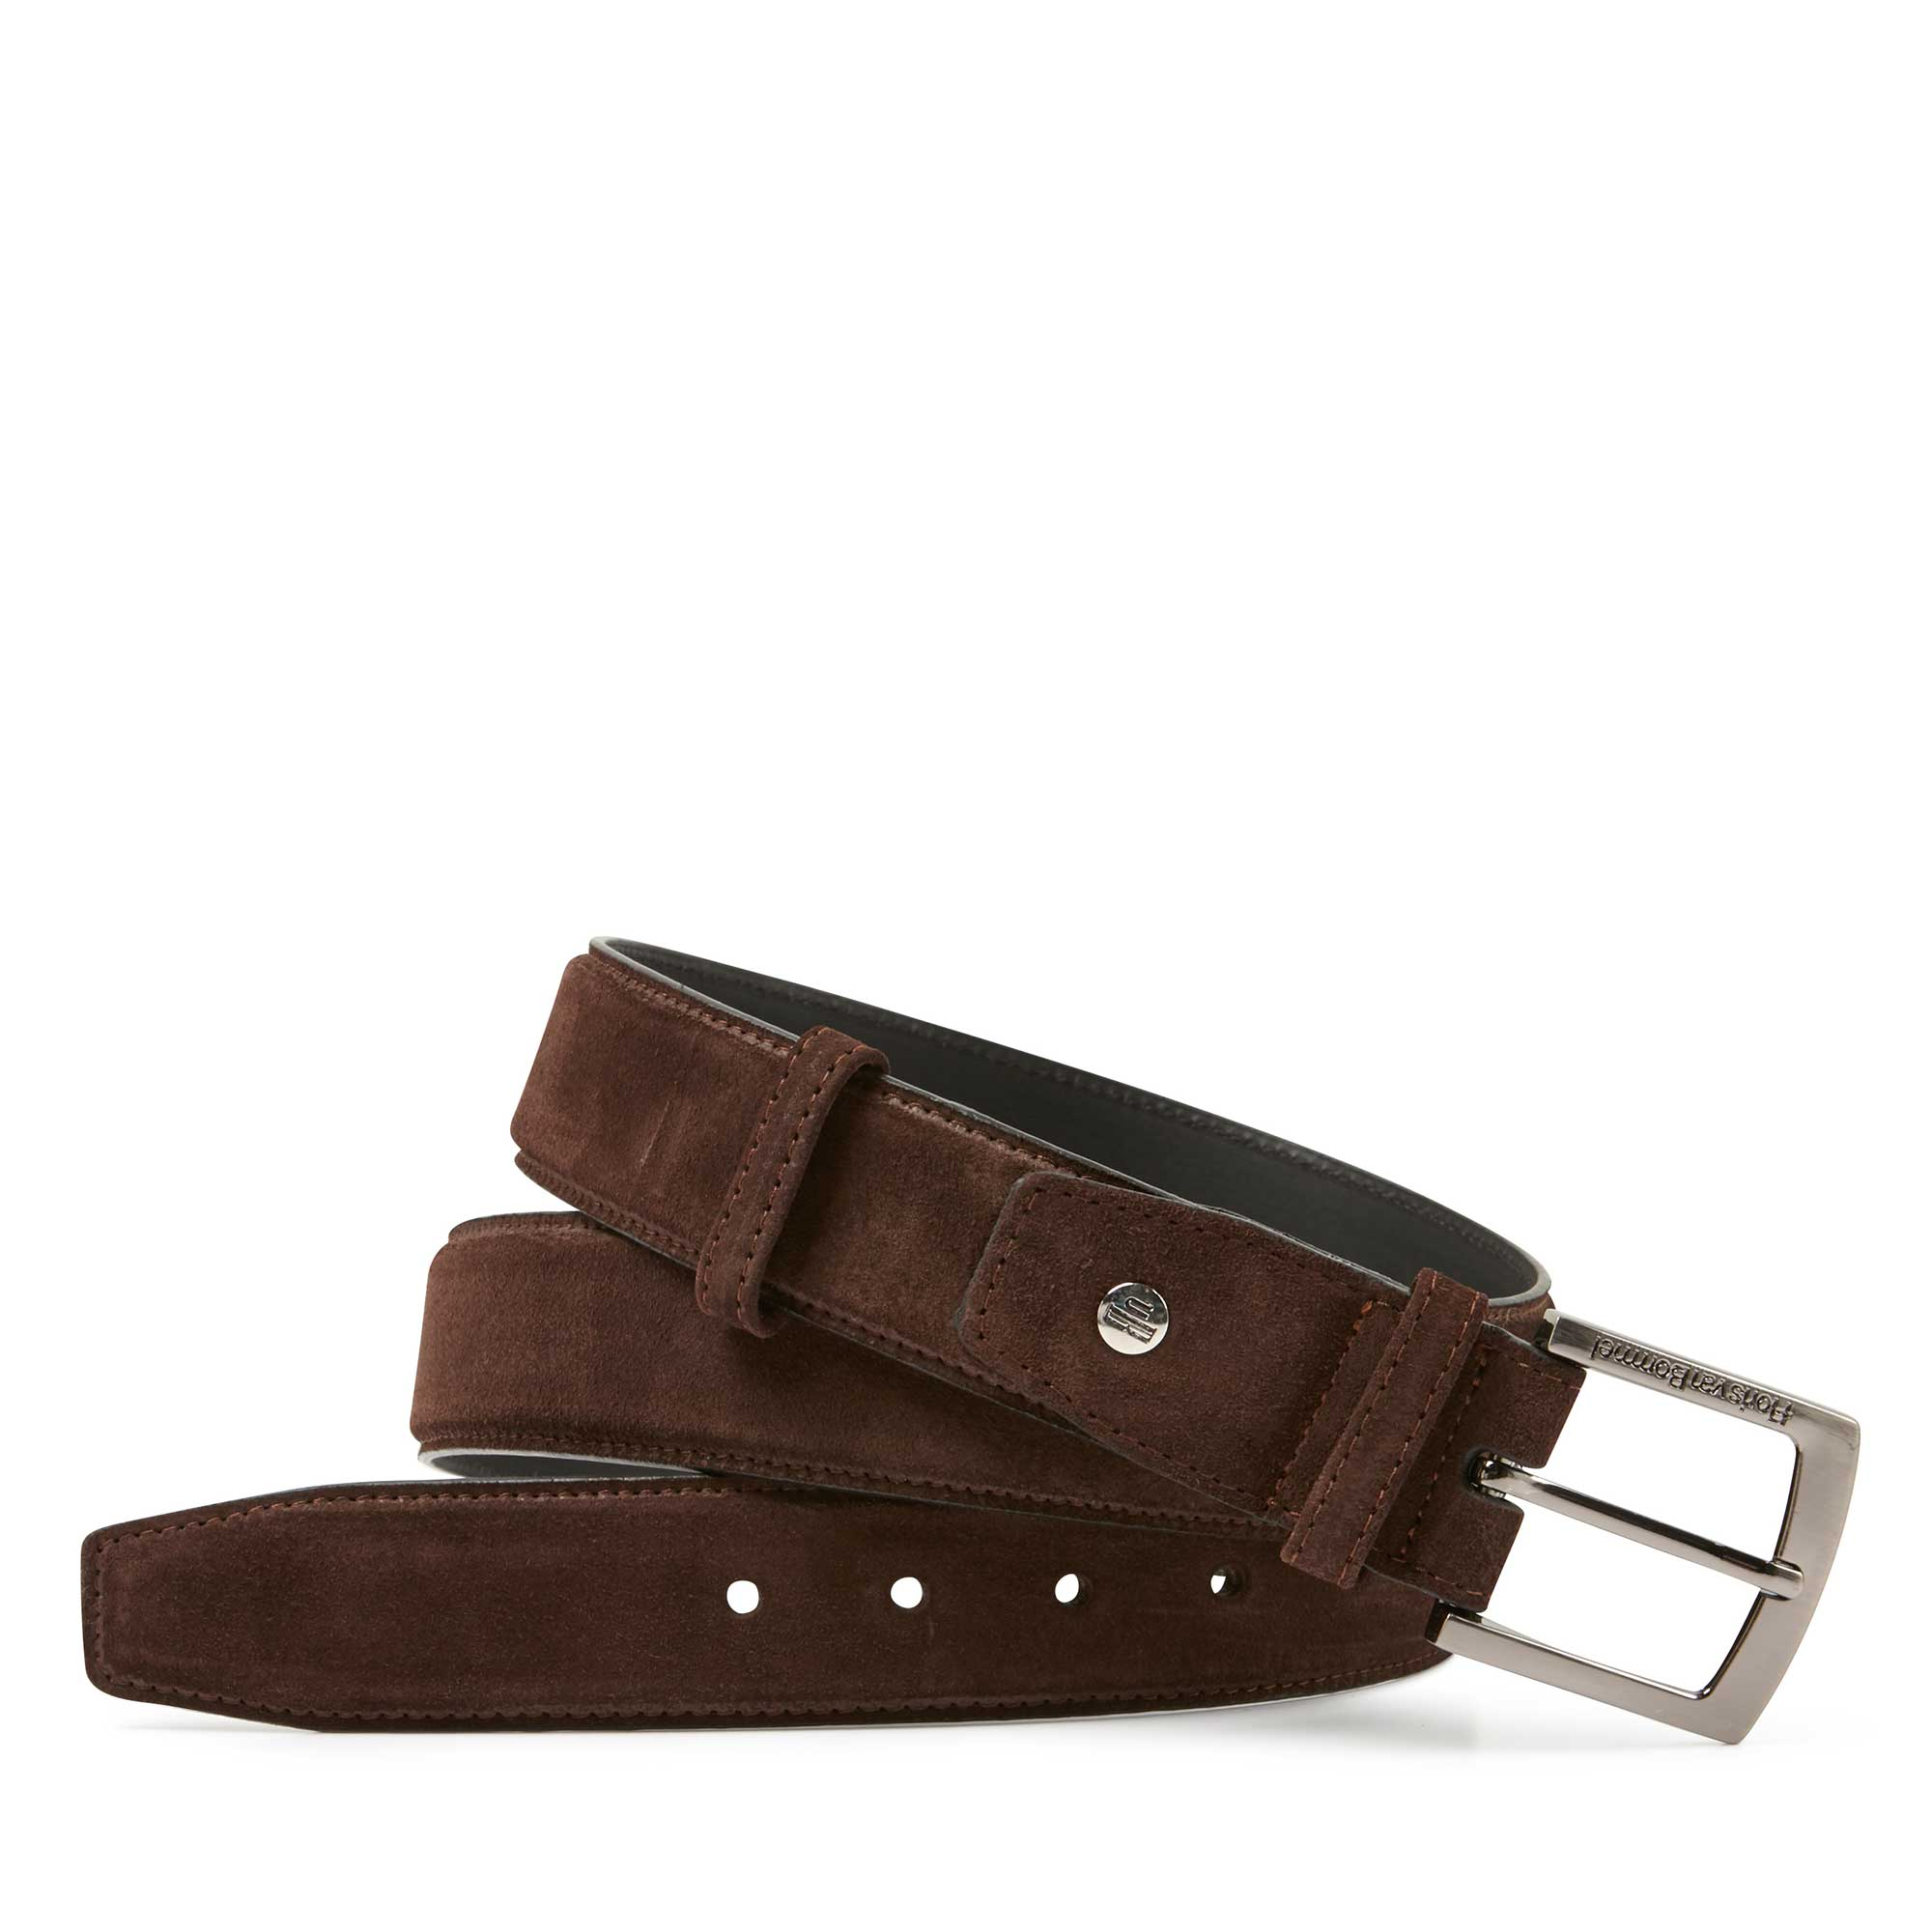 75150/02 - Floris van Bommel dark brown suede men's belt